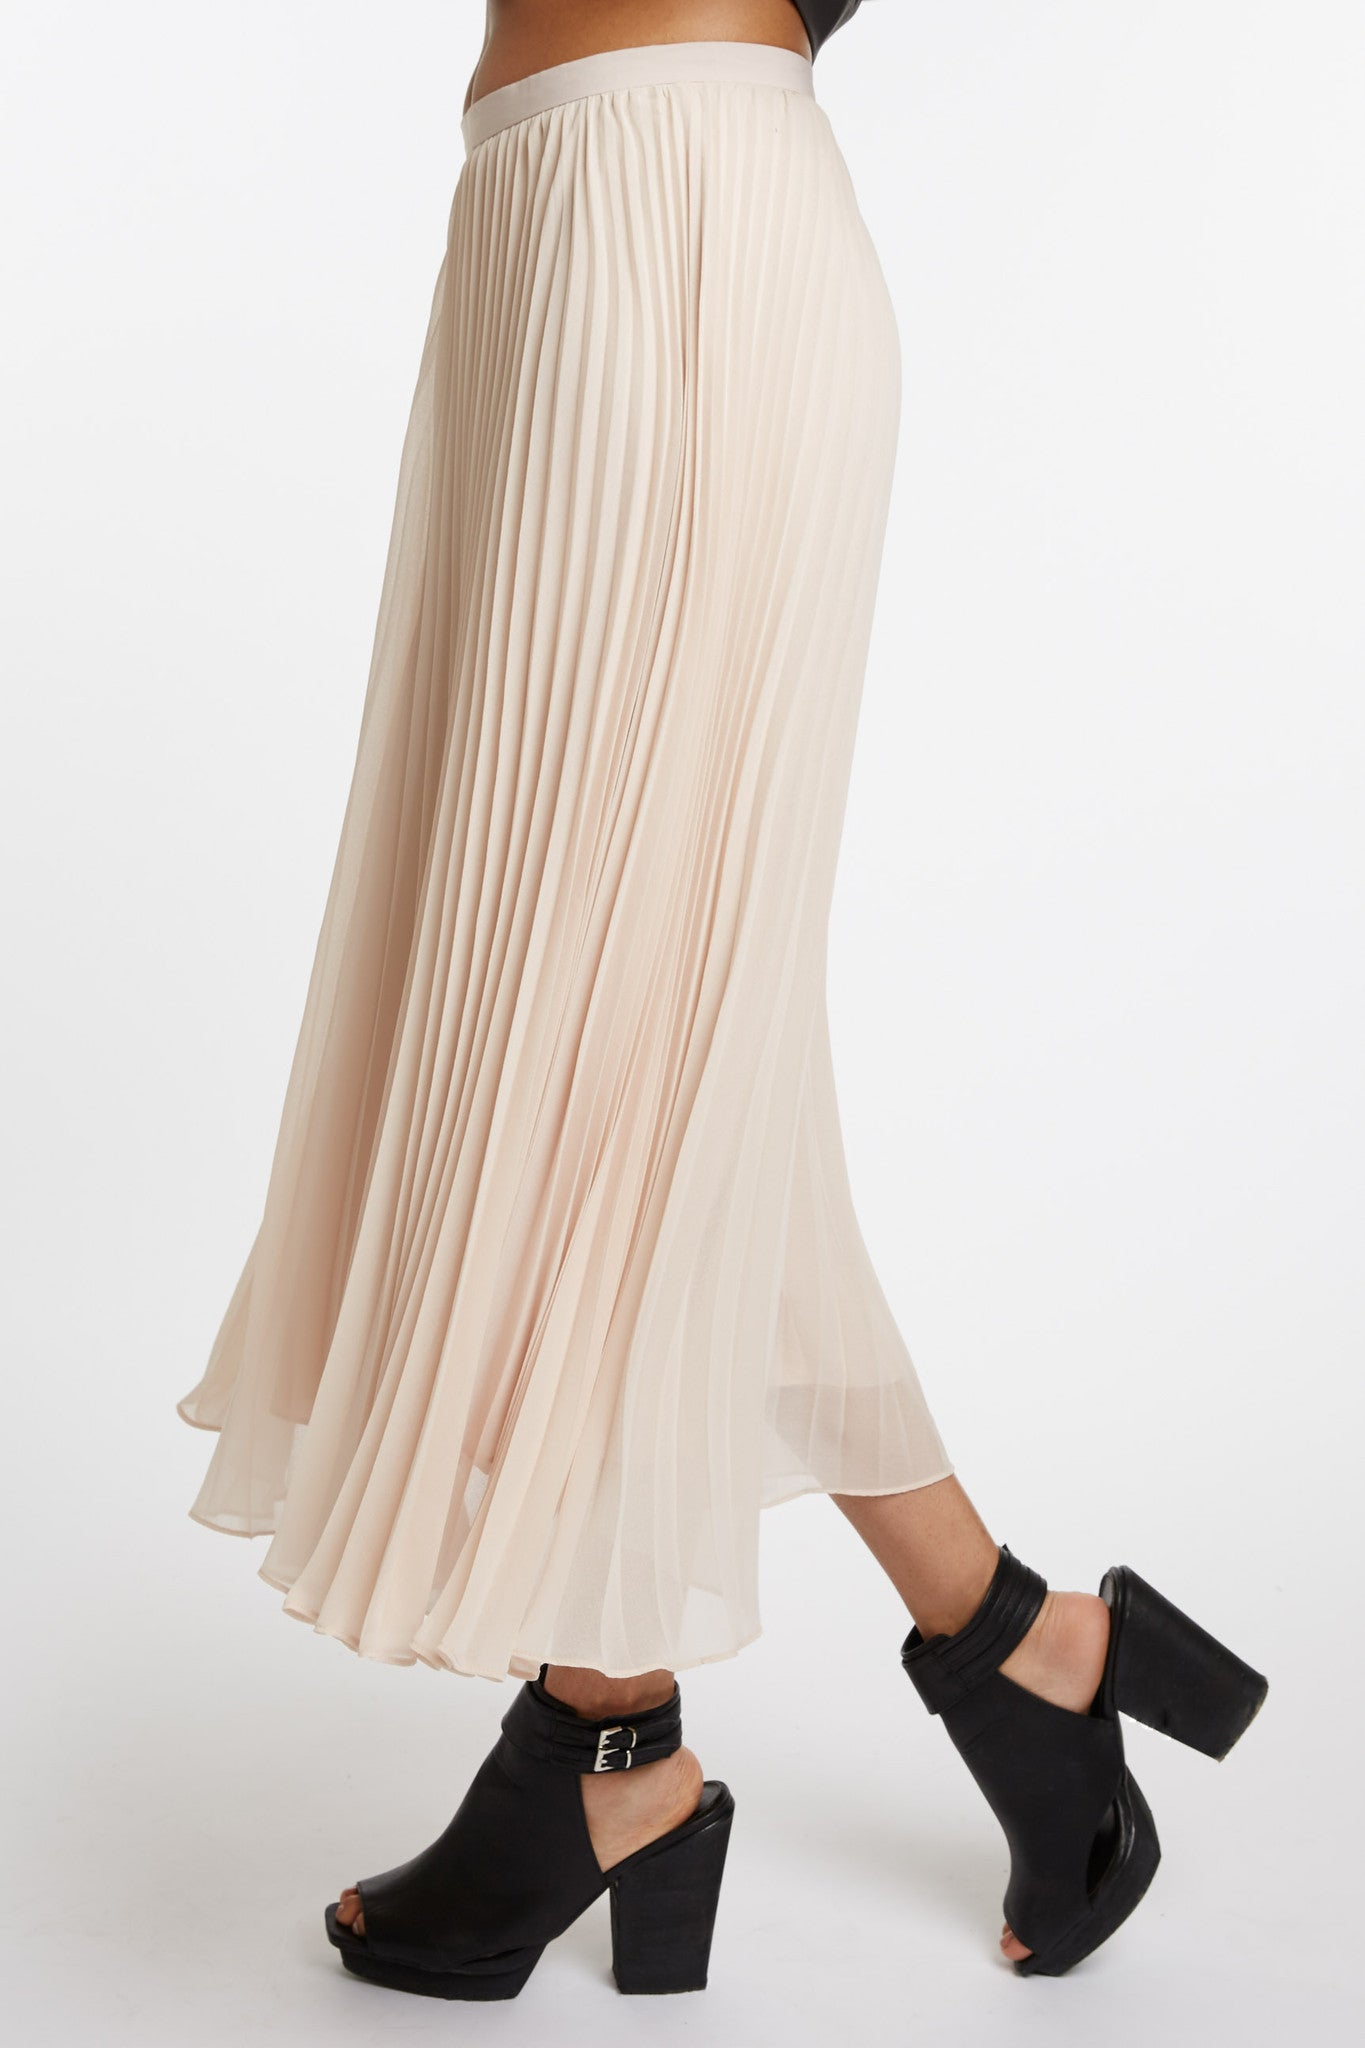 Pleated Midi Skirt by Search for Sanity